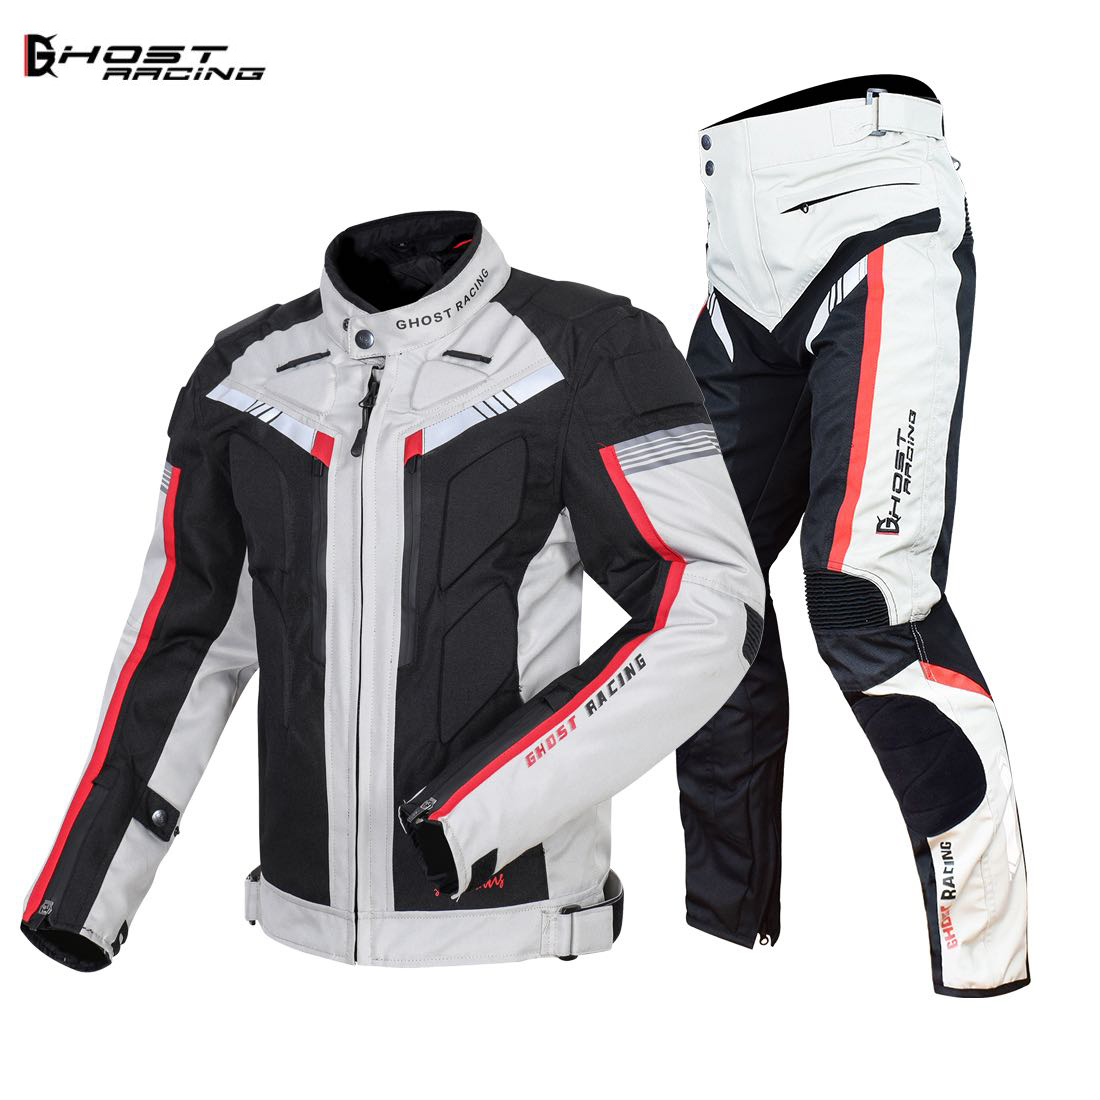 GHOST RACING Autumn Winter Motorcycle Jacket Men Waterproof Windproof Moto Jacket Riding Racing Motorbike Clothing Protective